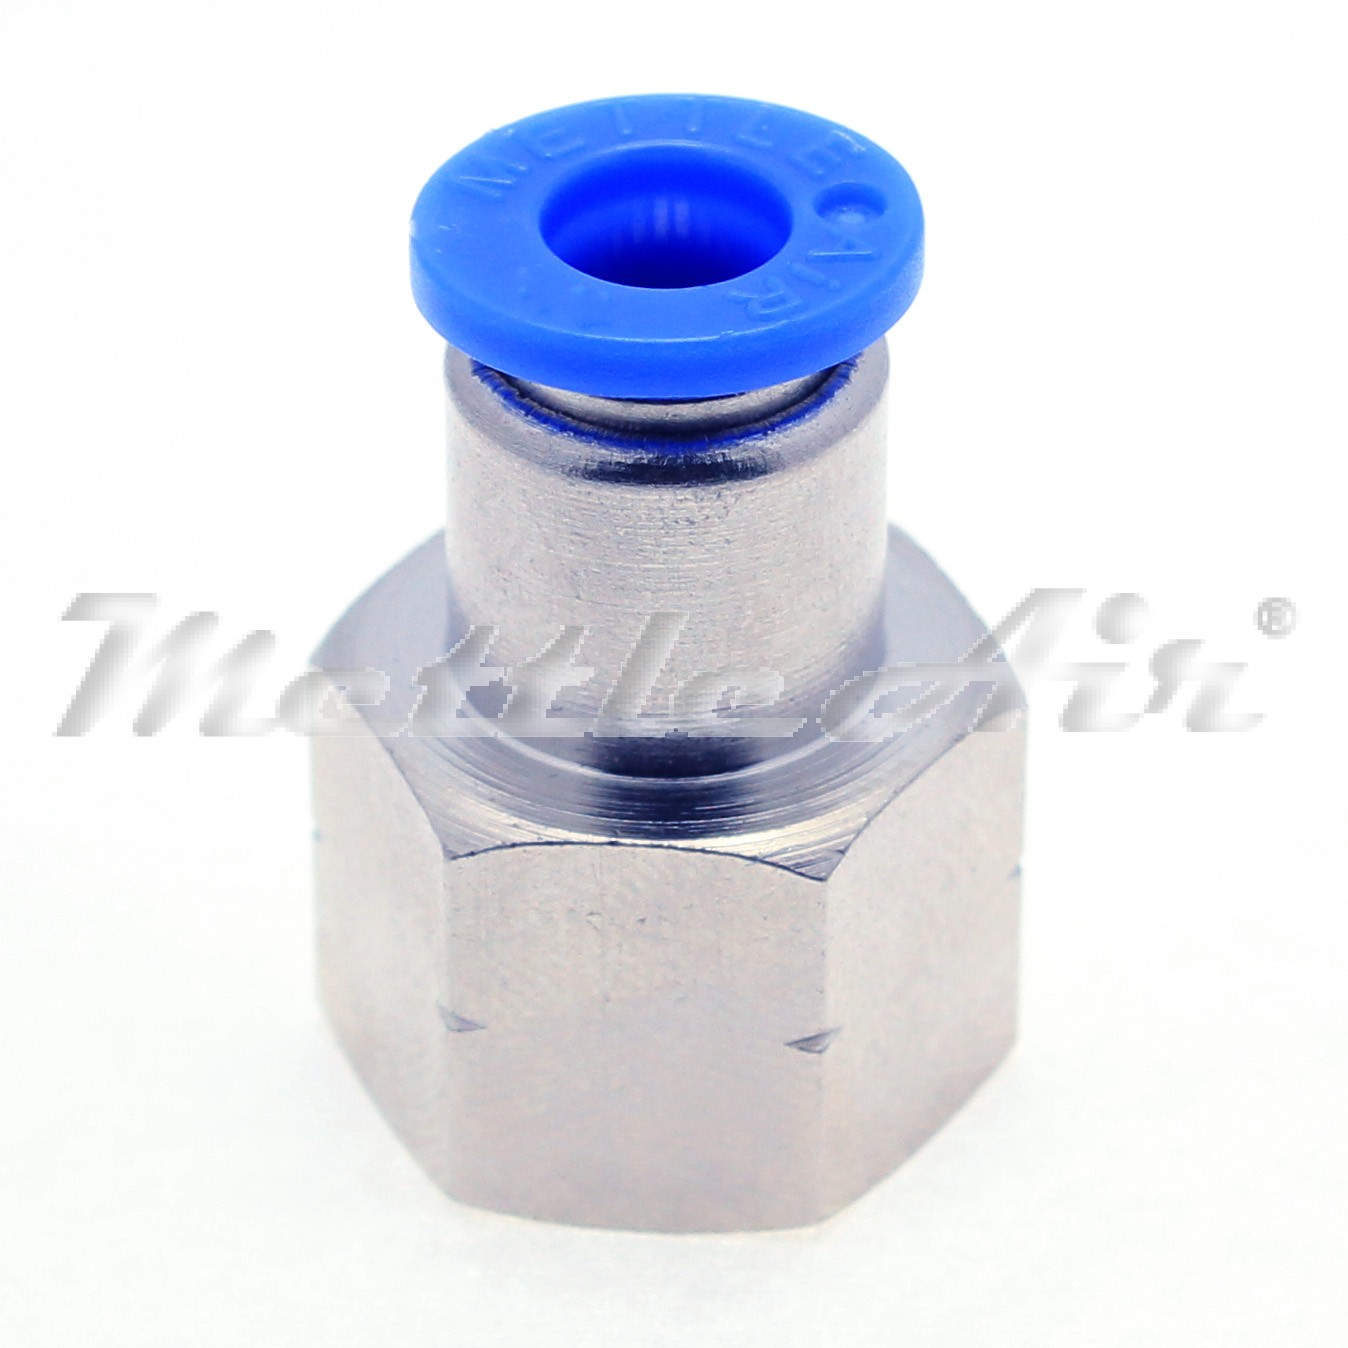 3//8 OD 3//8 OD MettleAir MTE 3//8-5//16 Push to Connect Tee T Reducer Union Fitting MTE 3//8-5//16-10PK 5//16 OD Pack of 10 Pack of 10 5//16 OD